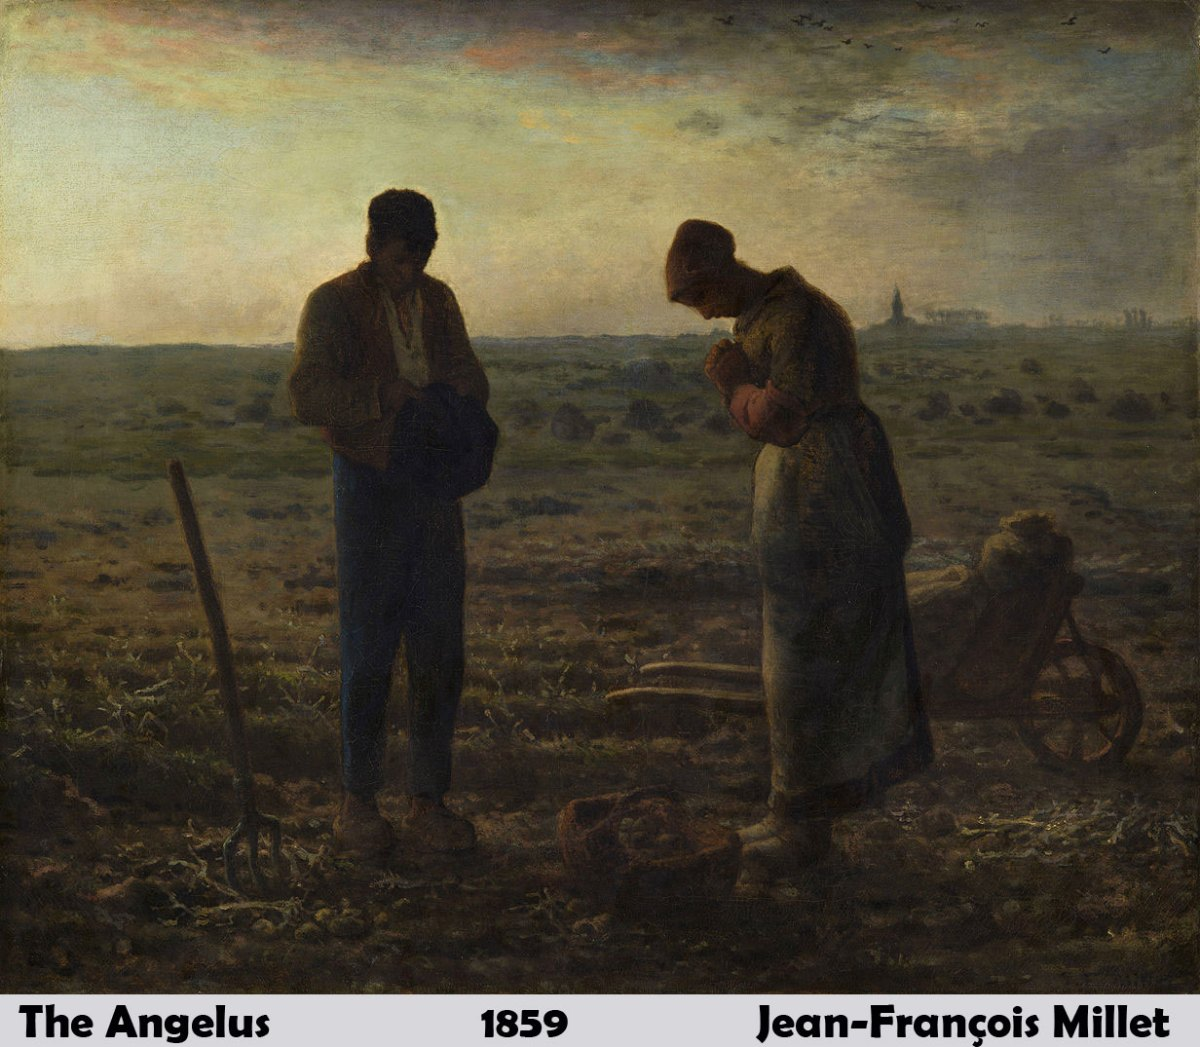 The Angelus by Jean Francois Millet